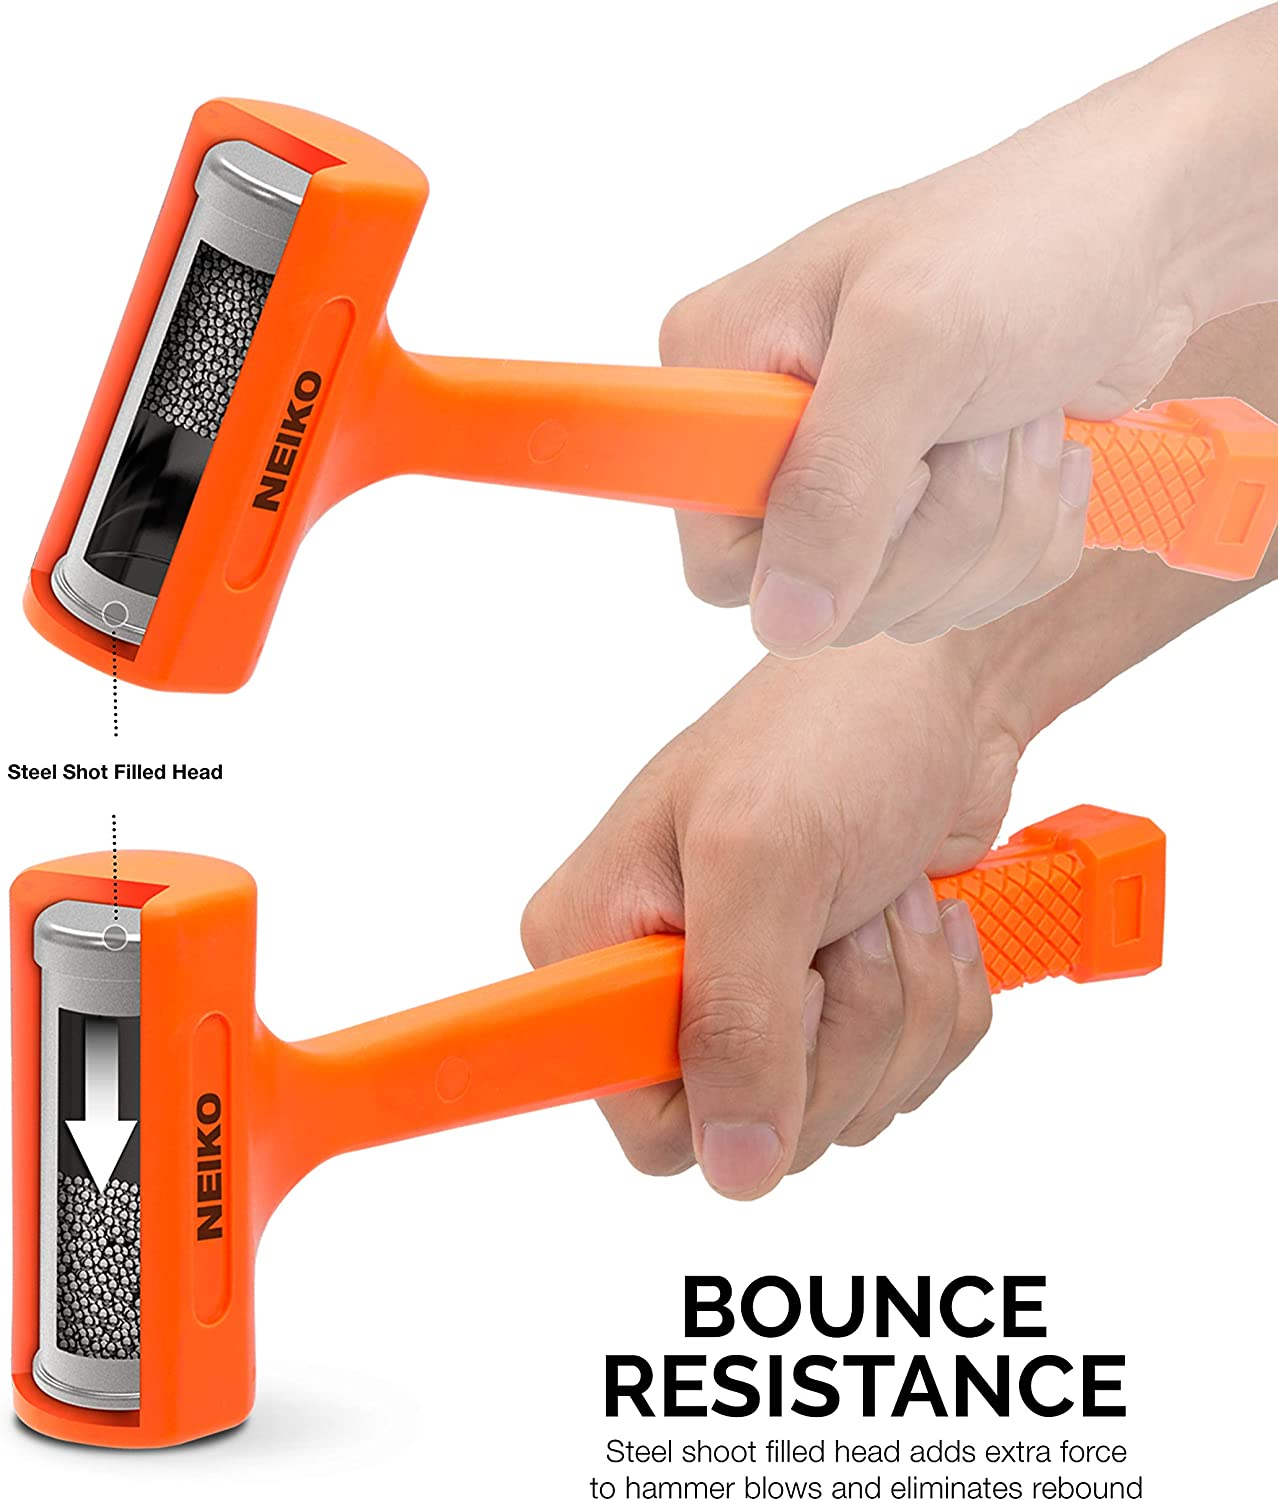 Neiko 02847a 2 Lb Dead Blow Hammer Neon Orange I Unibody Molded Checkered Grip Spark And Rebound Resistant Amazon Com Shop with confidence on ebay! neiko 02847a 2 lb dead blow hammer neon orange i unibody molded checkered grip spark and rebound resistant